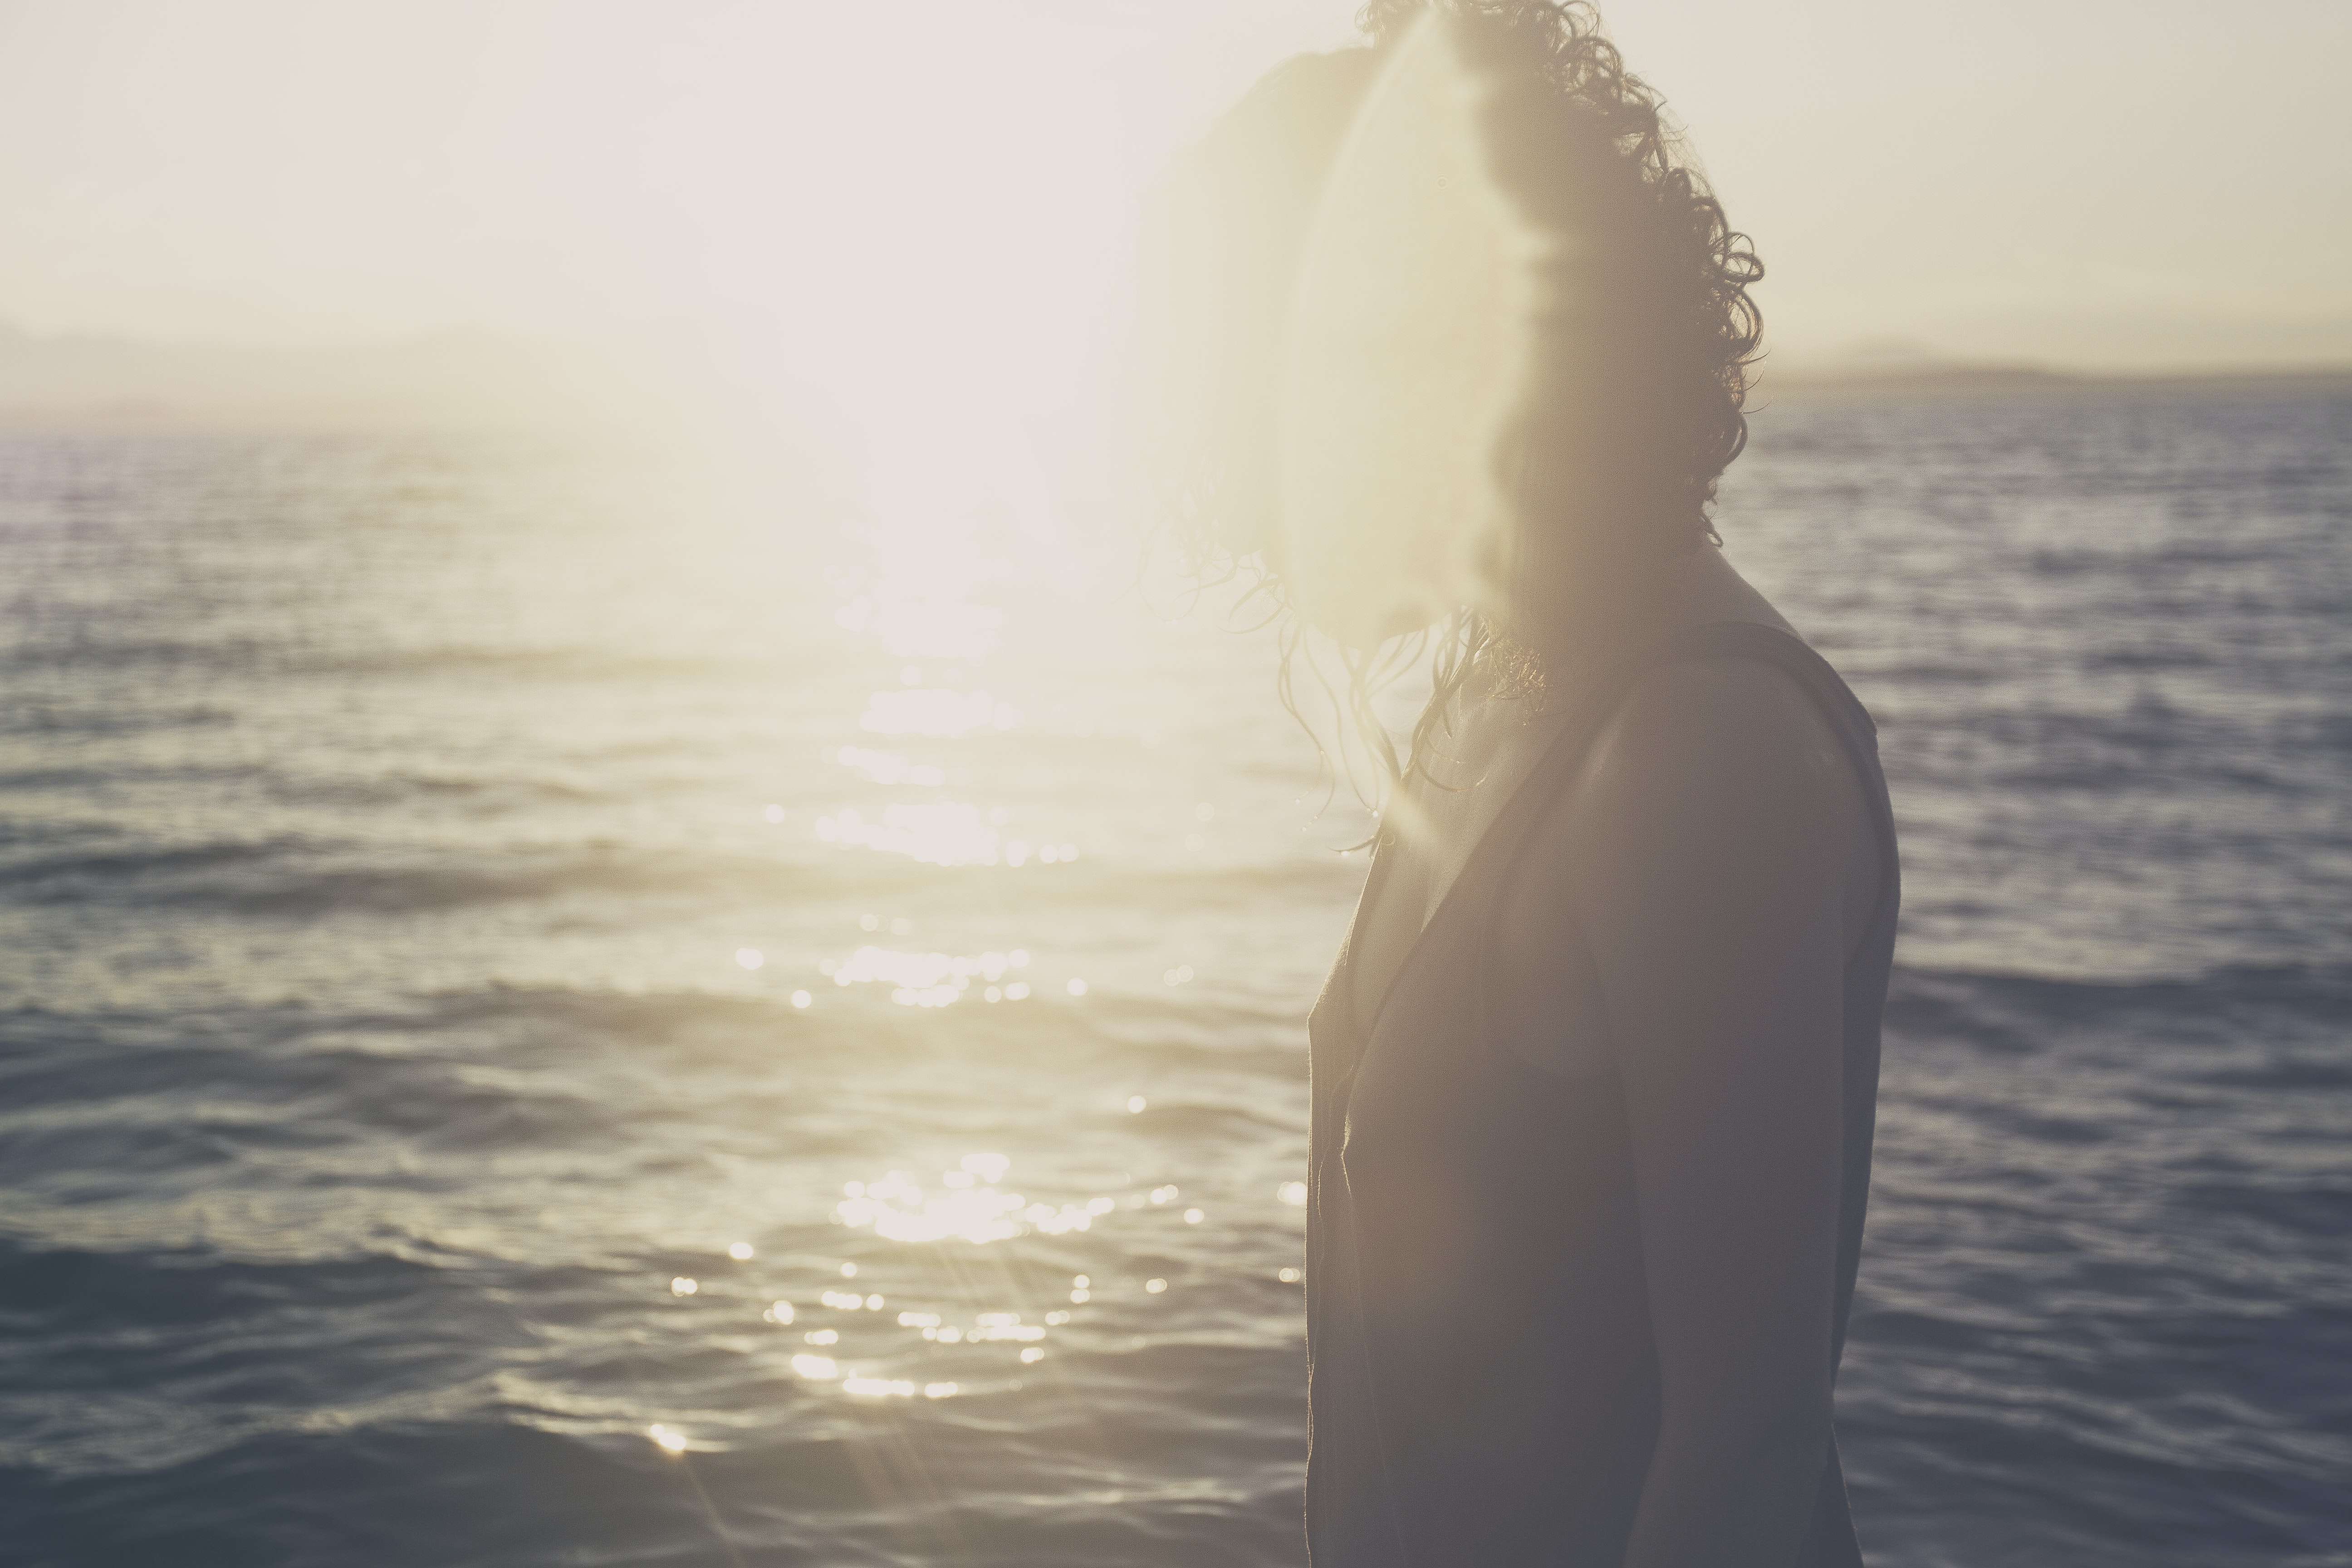 woman standing on body of water under sunset